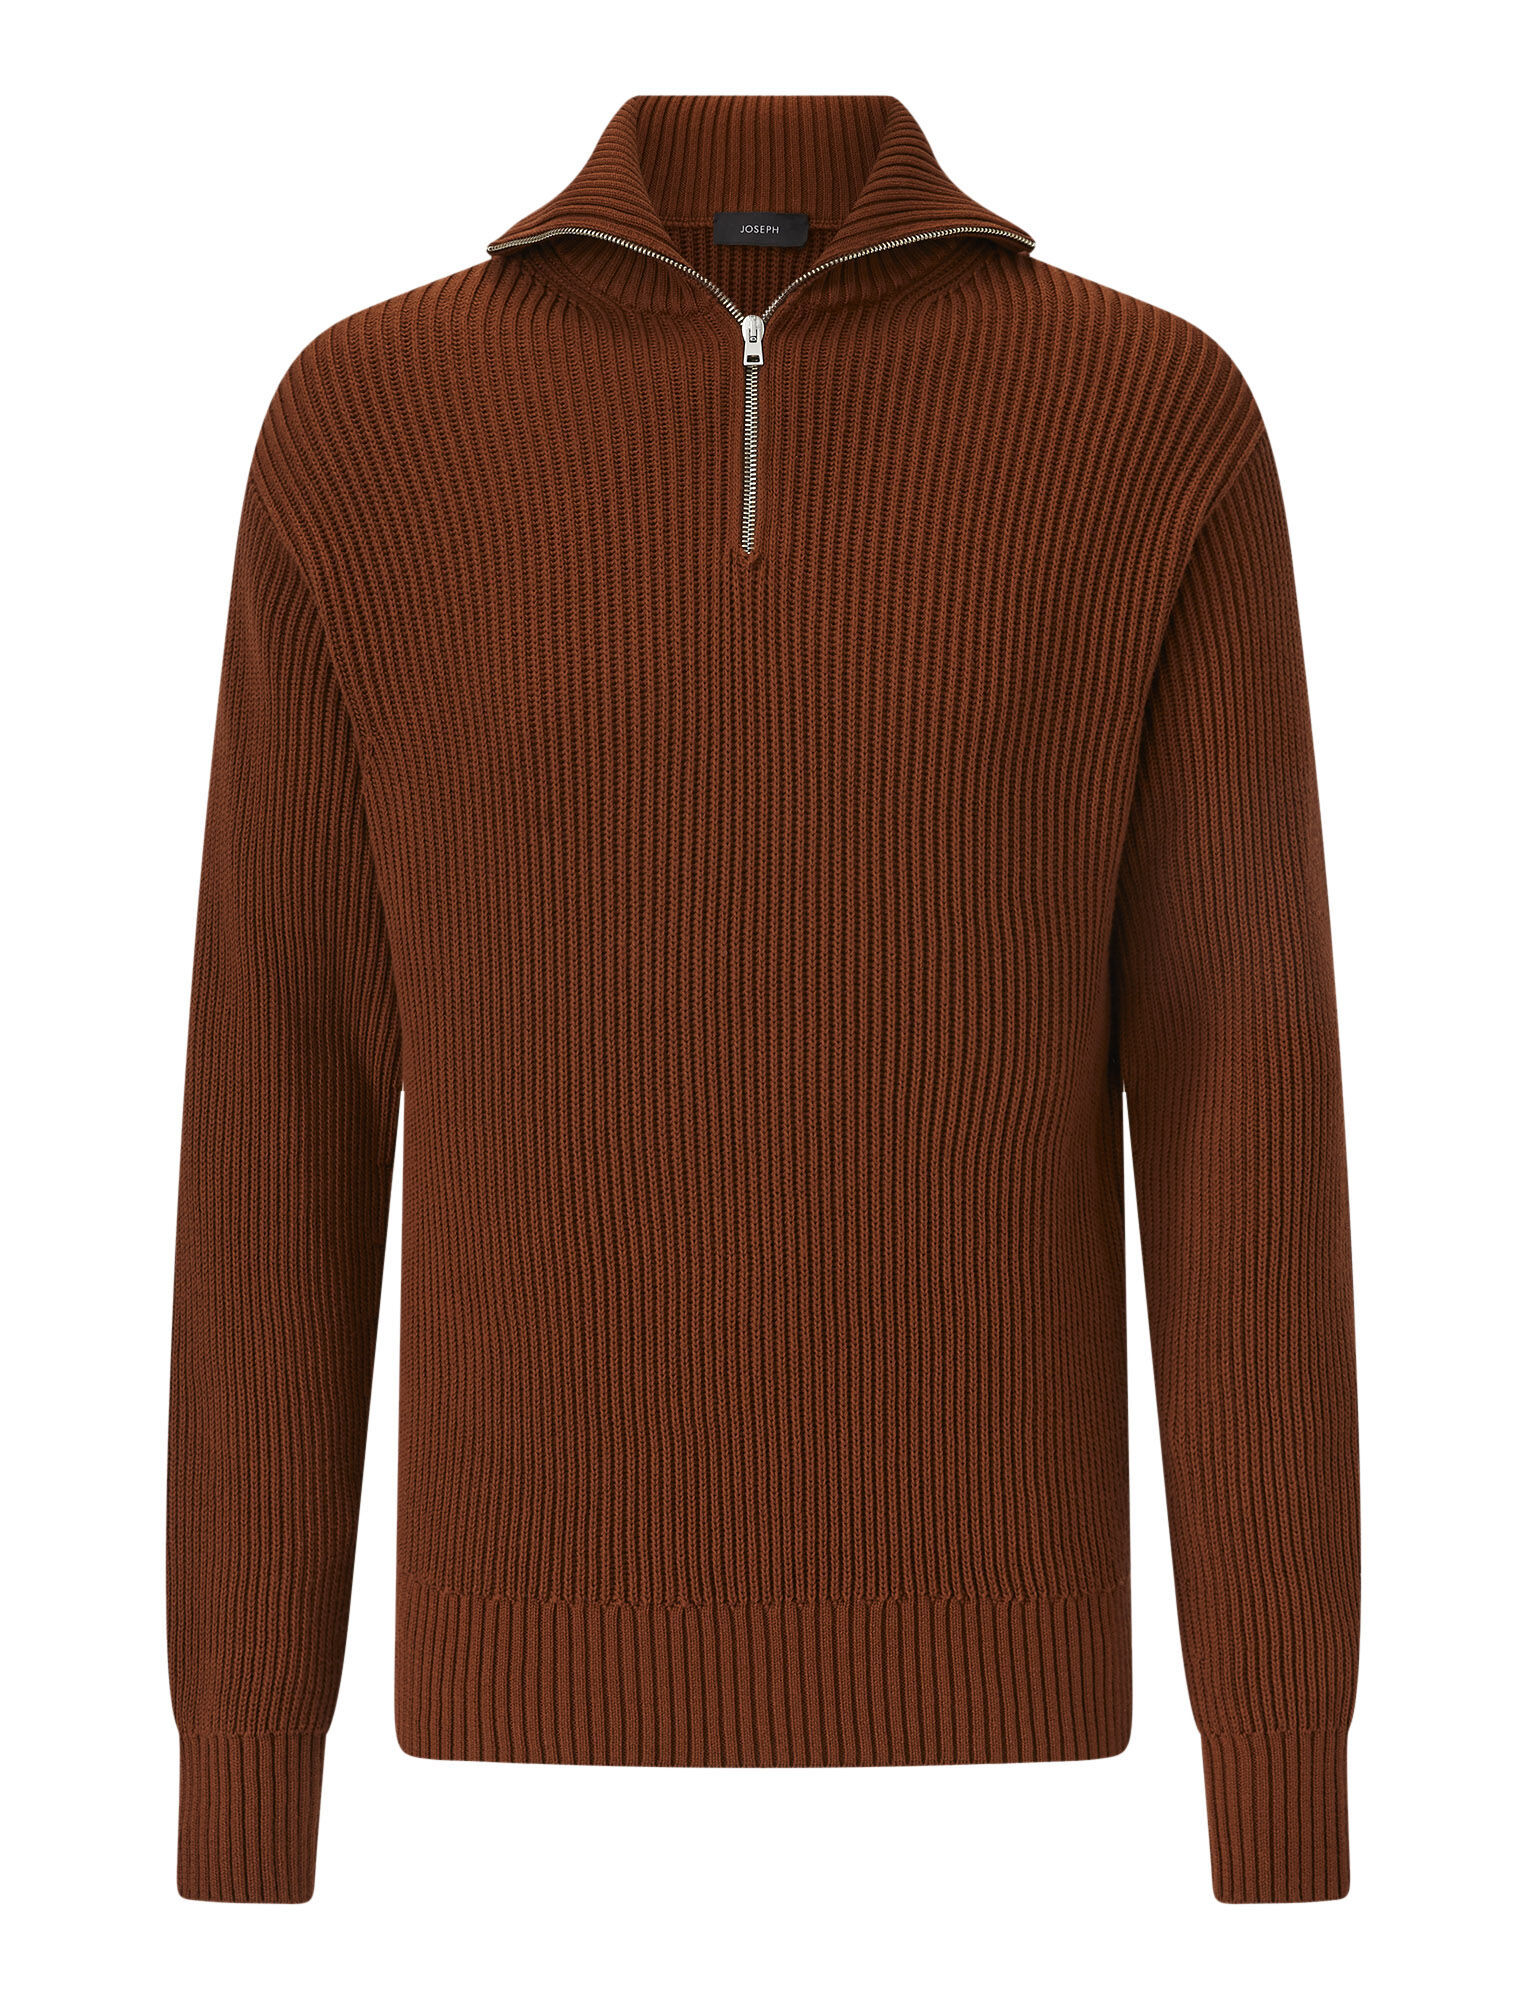 Joseph, High Neck Zip Cote Anglaise Knit, in RUST